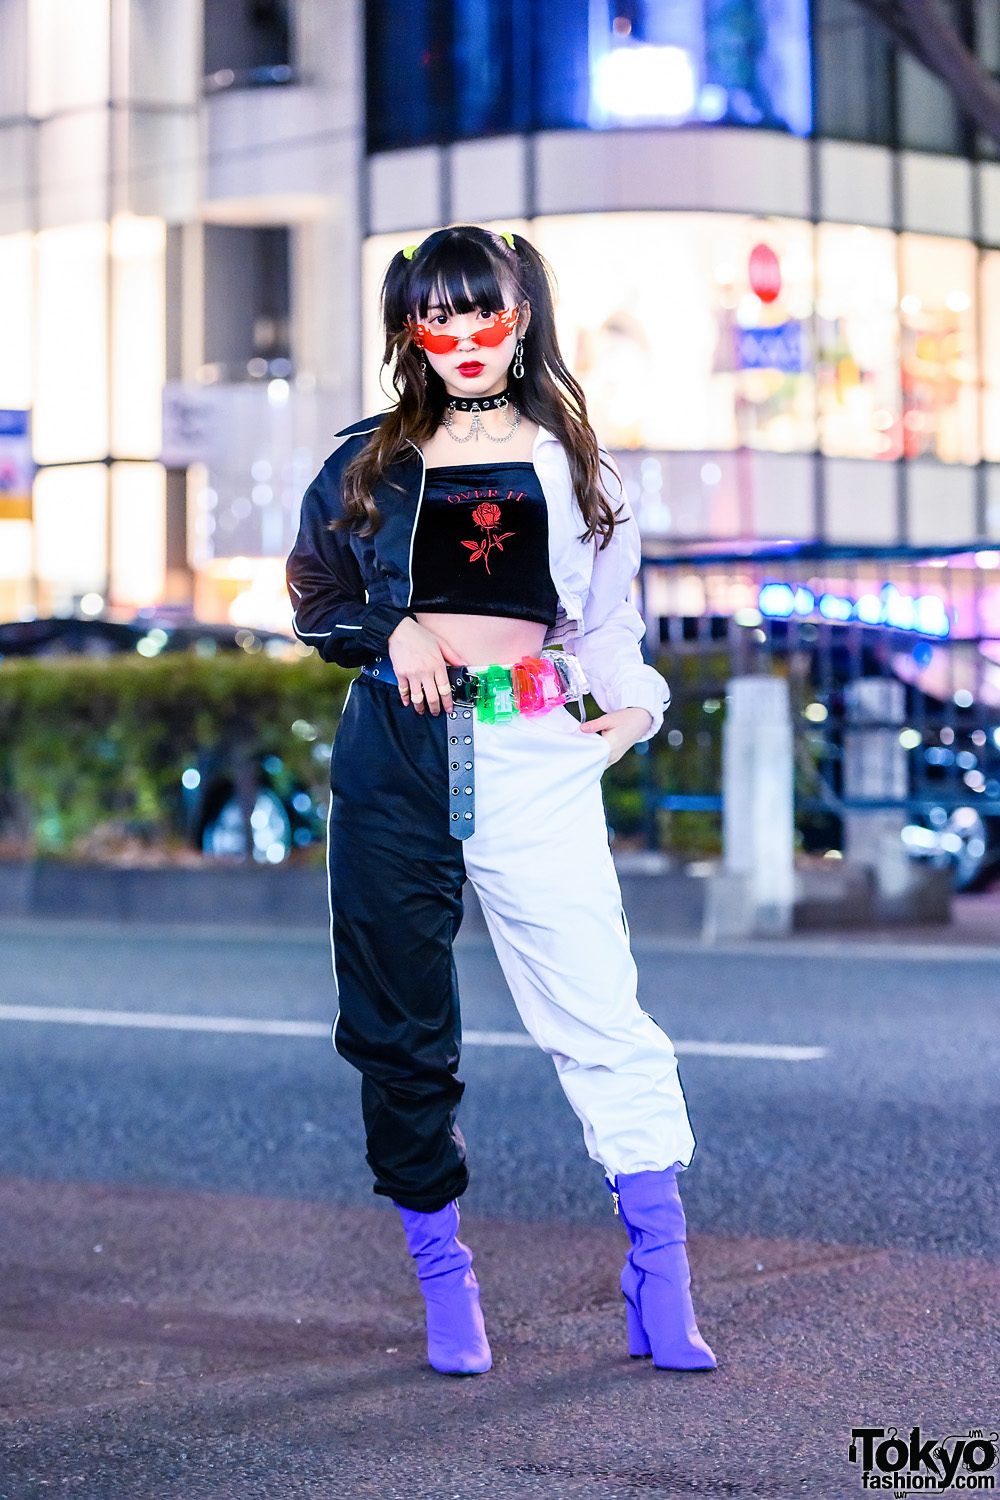 Japanese Idol in Two-Tone Fashion, Flames Sunglasses, Tube Top, WEGO, Spinns, Sevens, Belt Pouches & Yello Boots